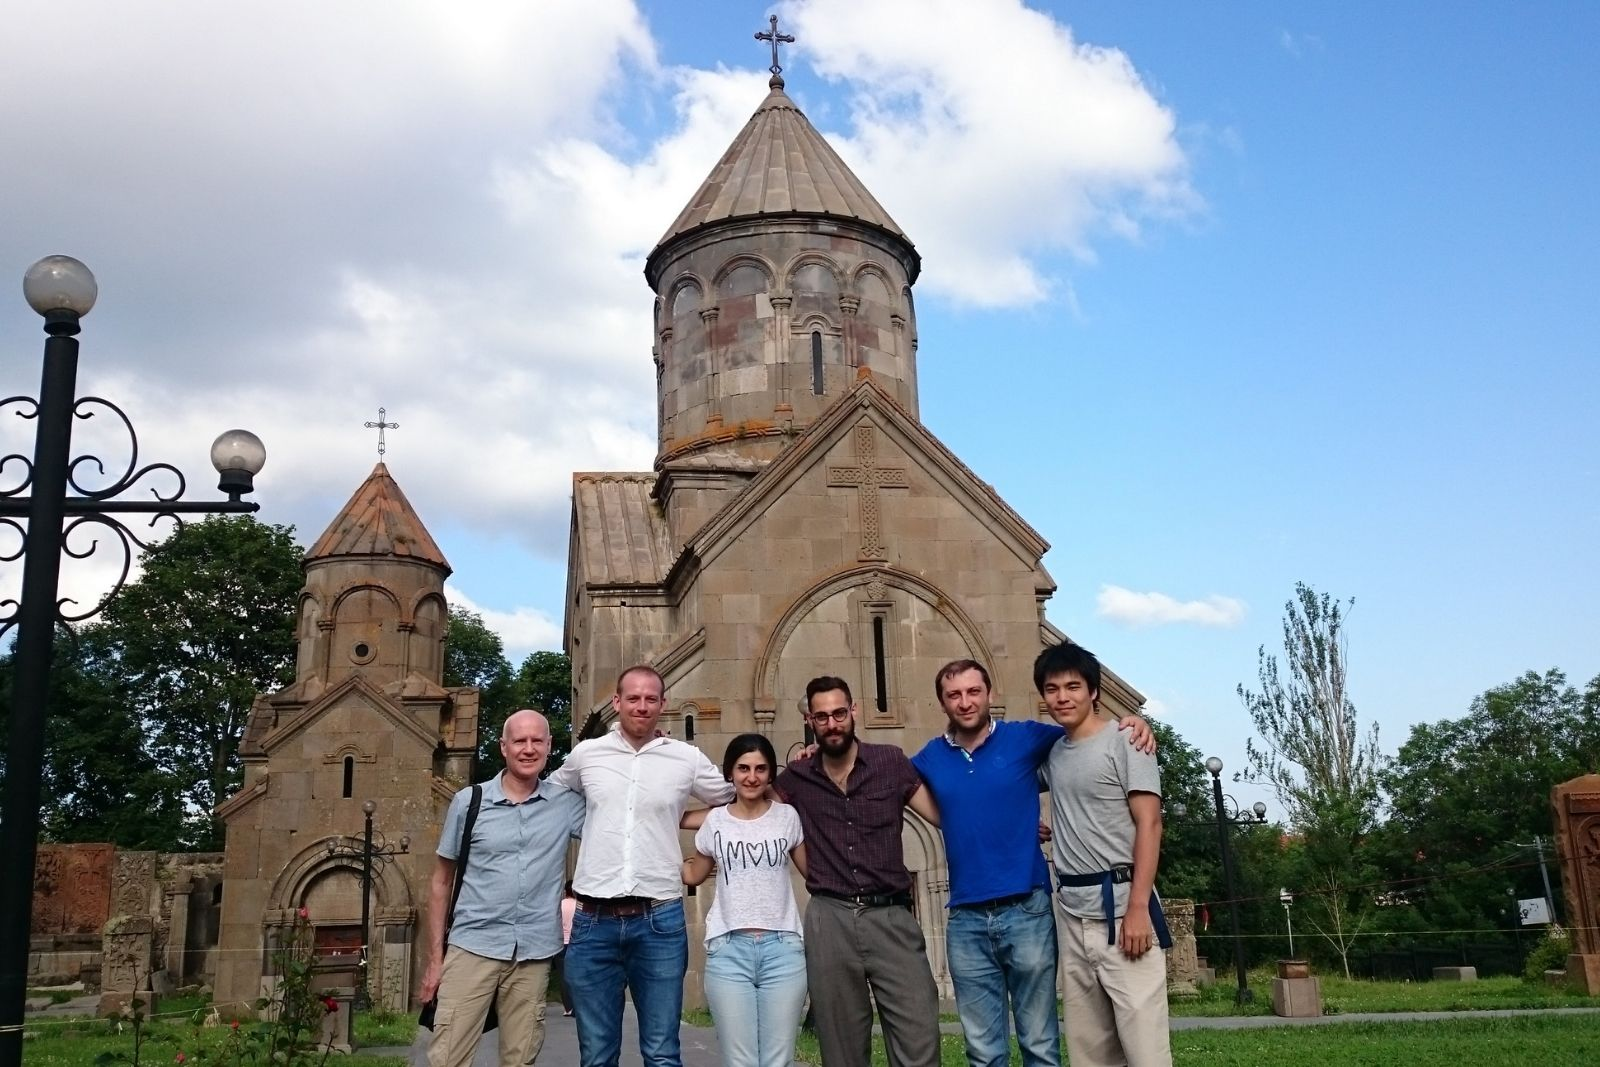 2016 Armenian Studies summer school participants at Kecharis monastery in Tsaghkadzor